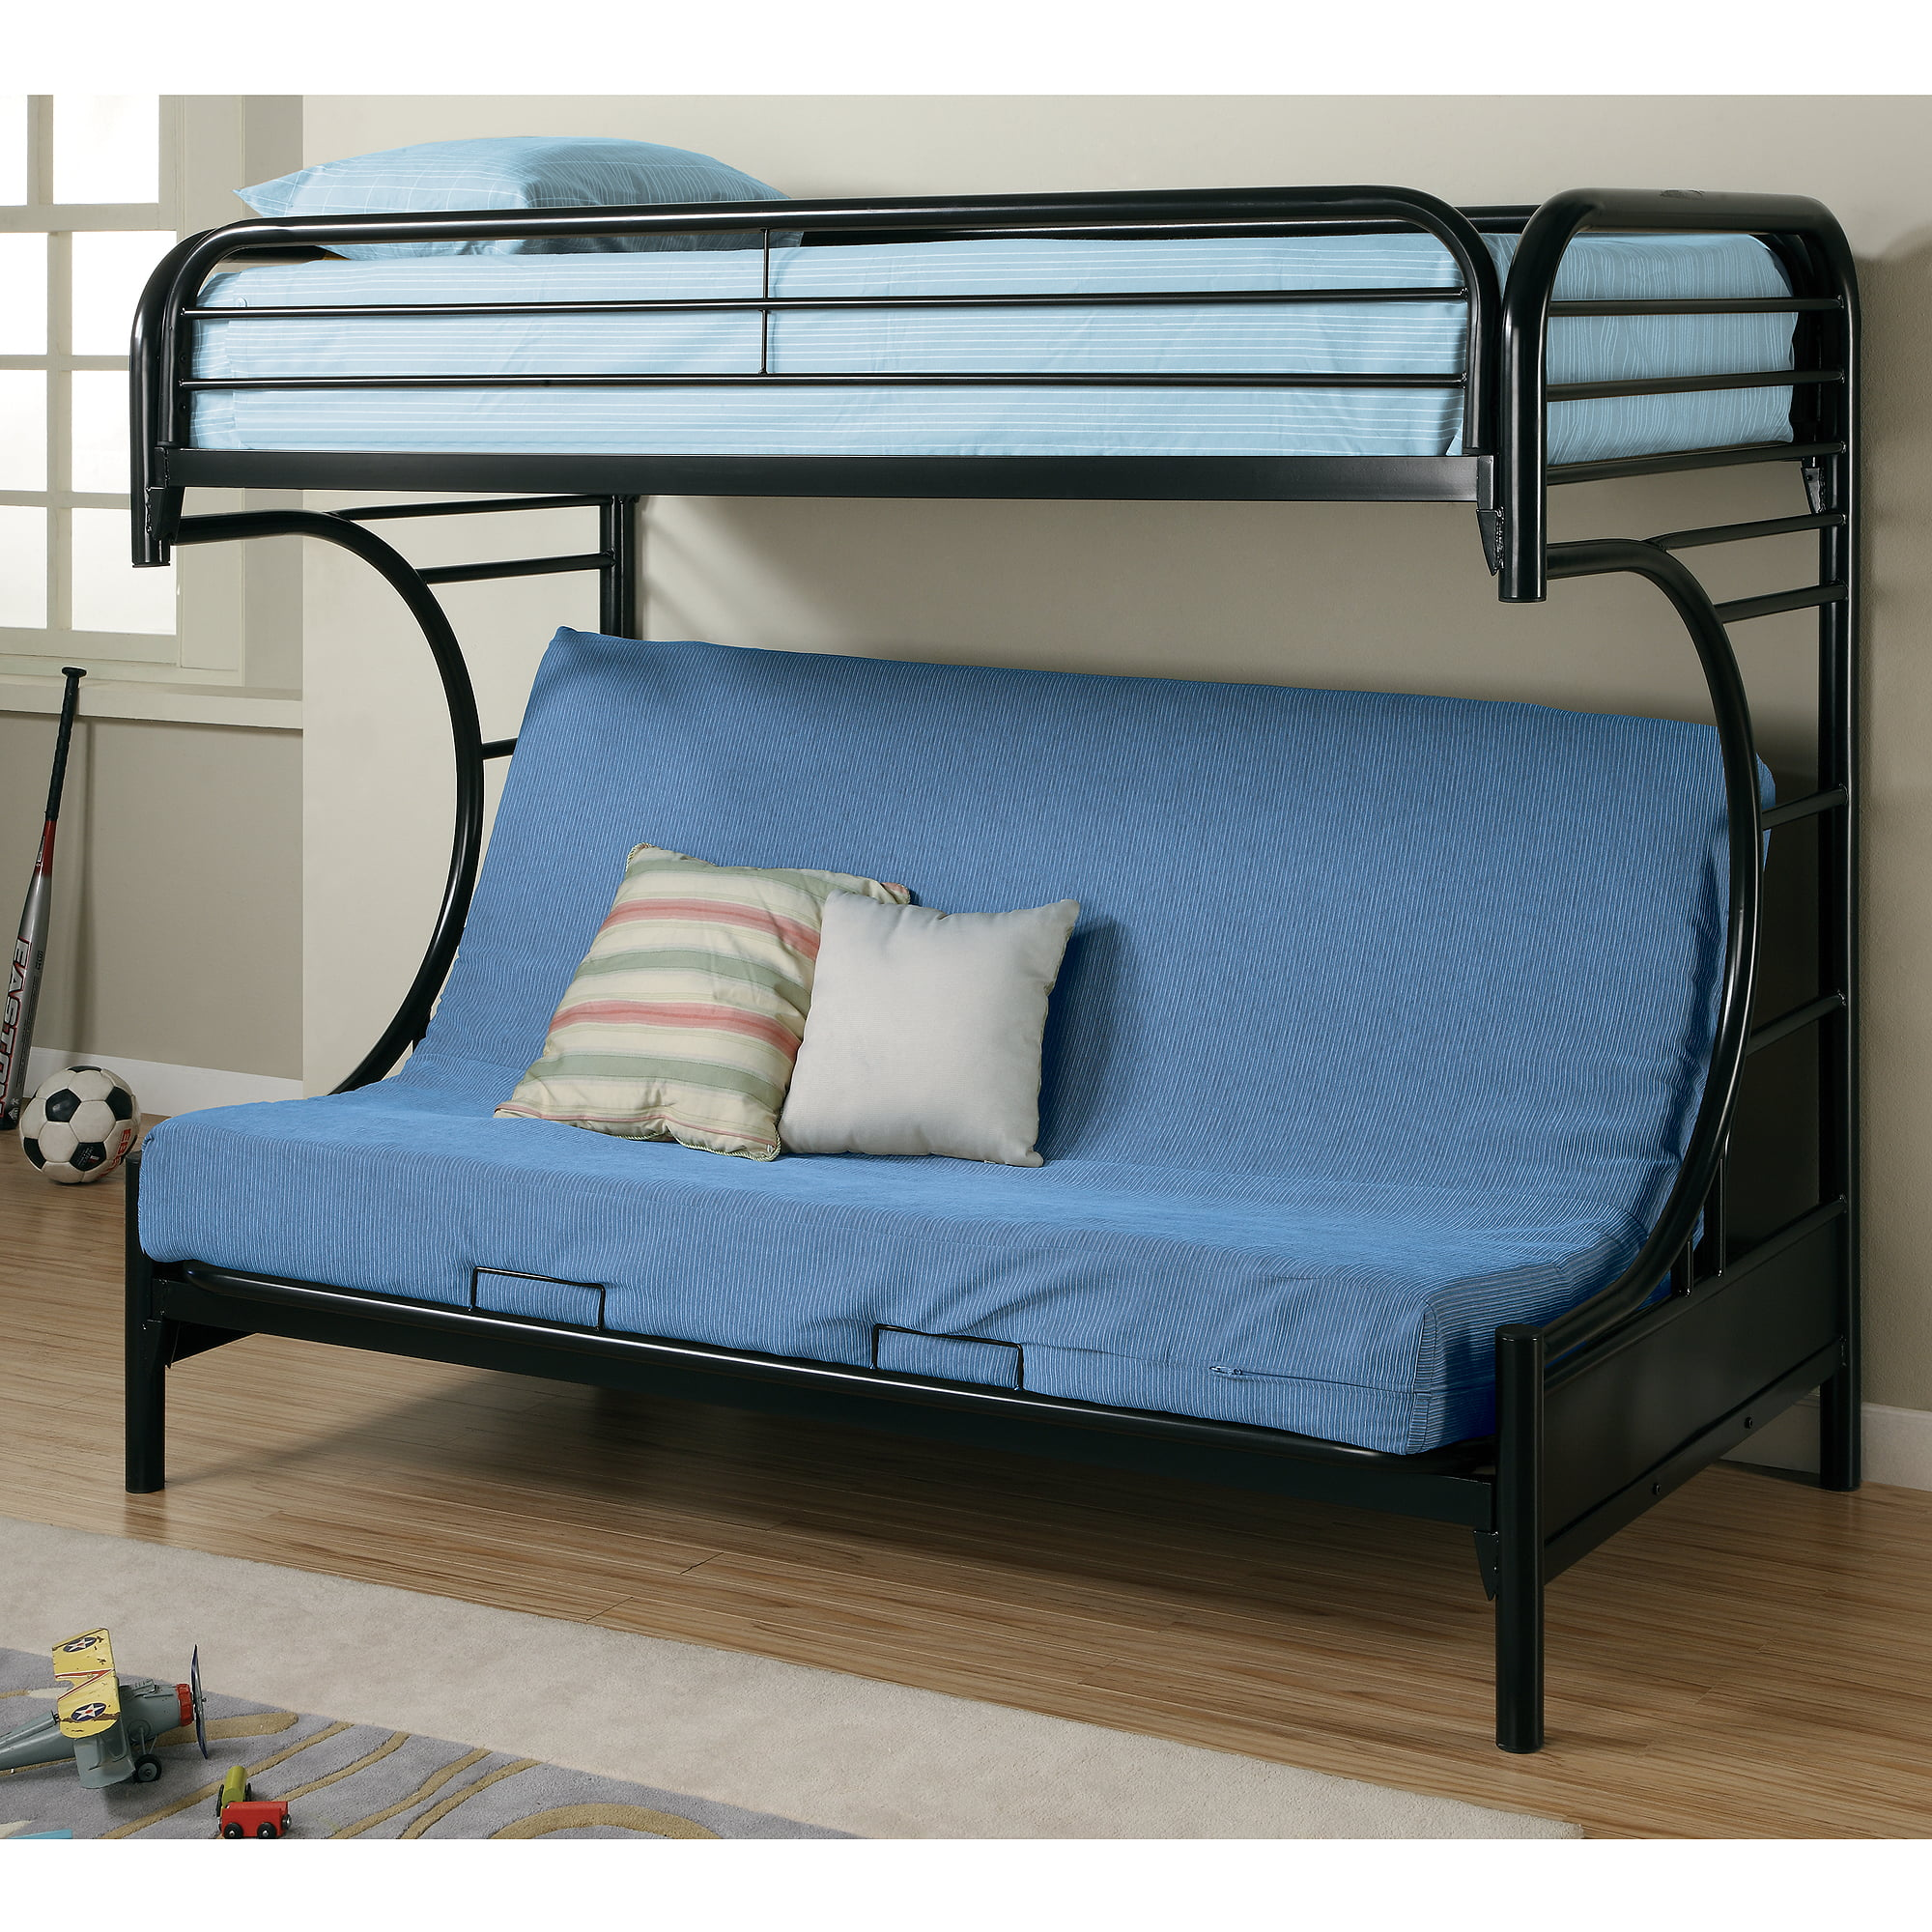 coaster c style twin over full futon metal bunk bed black   walmart   coaster c style twin over full futon metal bunk bed black      rh   walmart